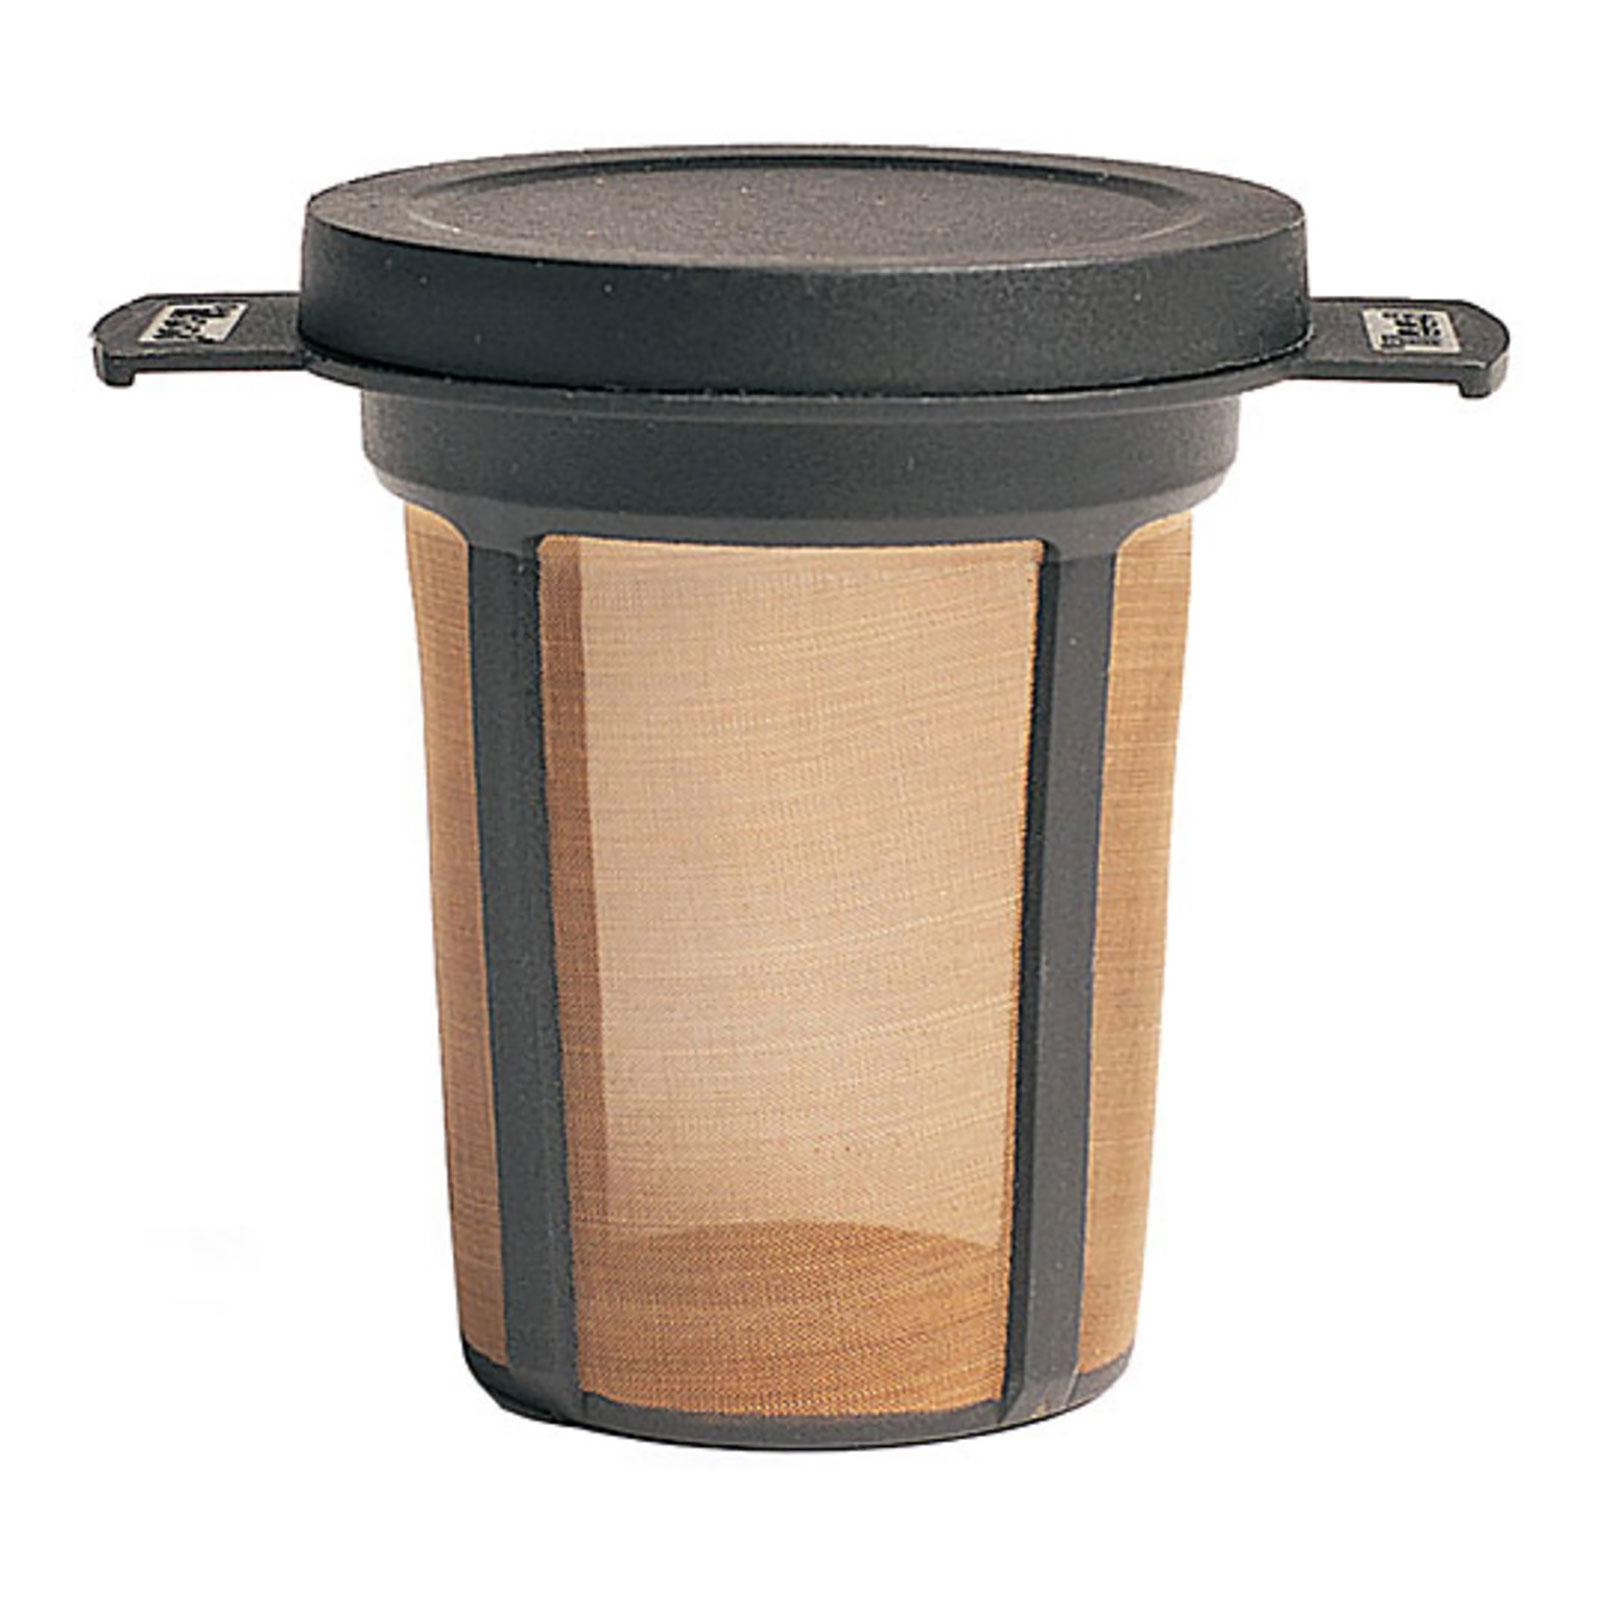 MSR coffee filter